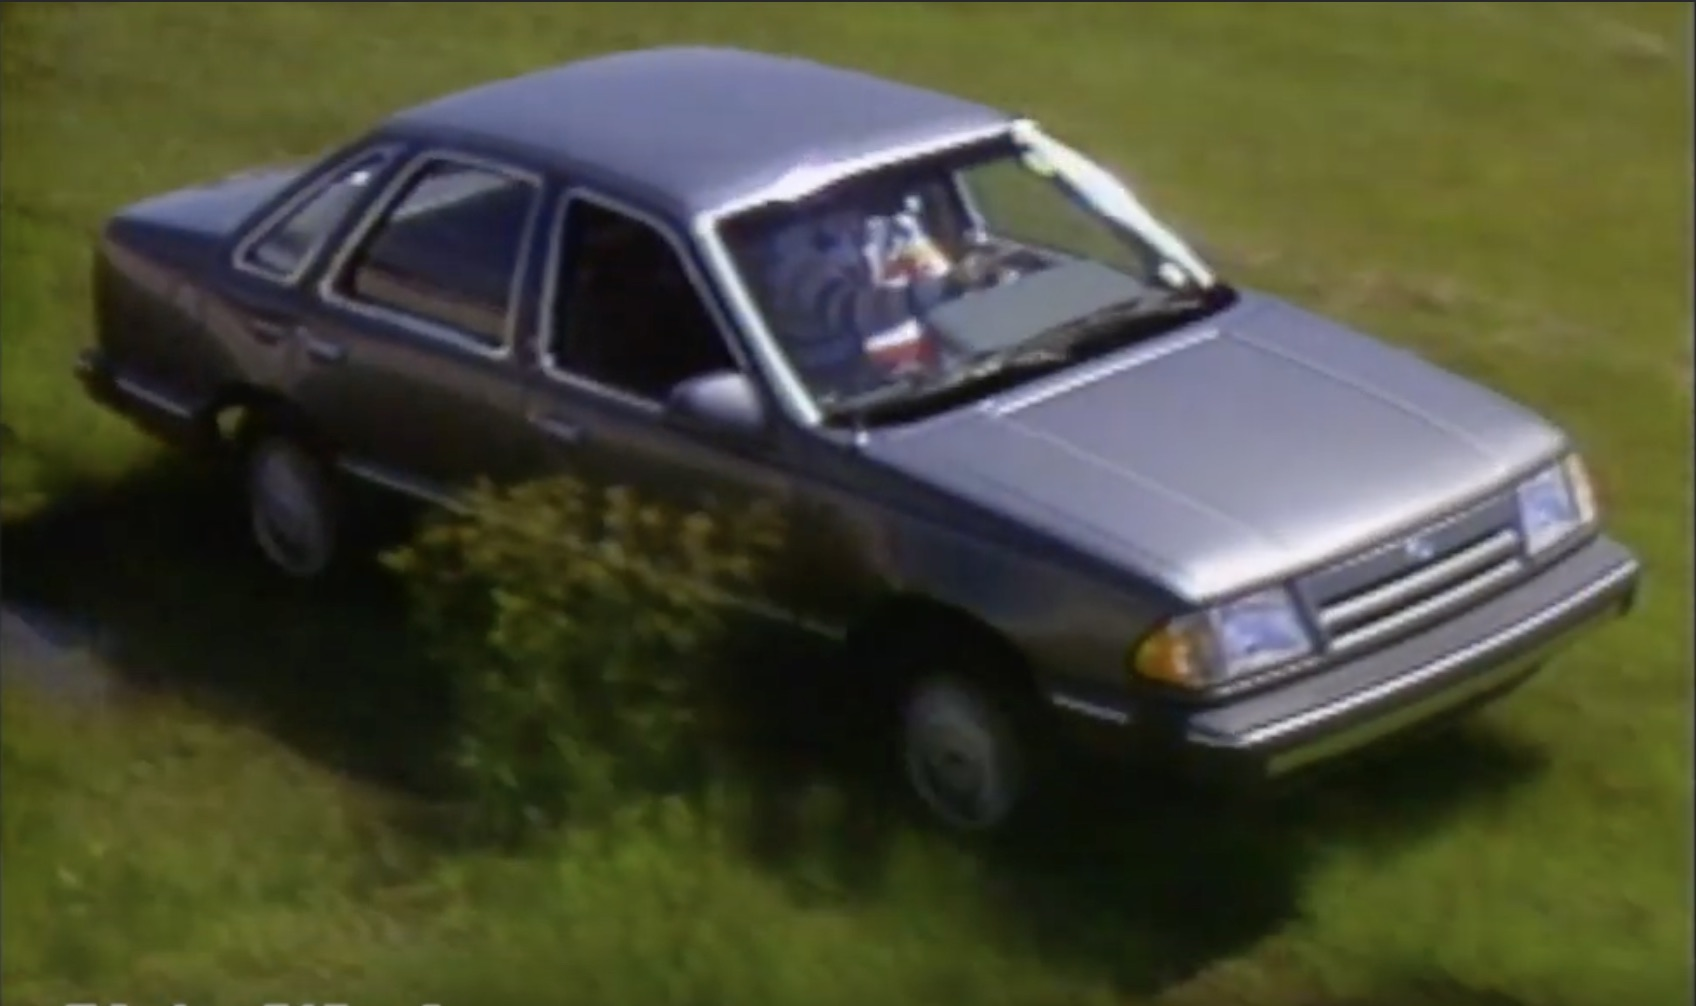 All-Wheel-Drive Flashback: The Day MotorWeek Took A Ford Tempo Into The Mud